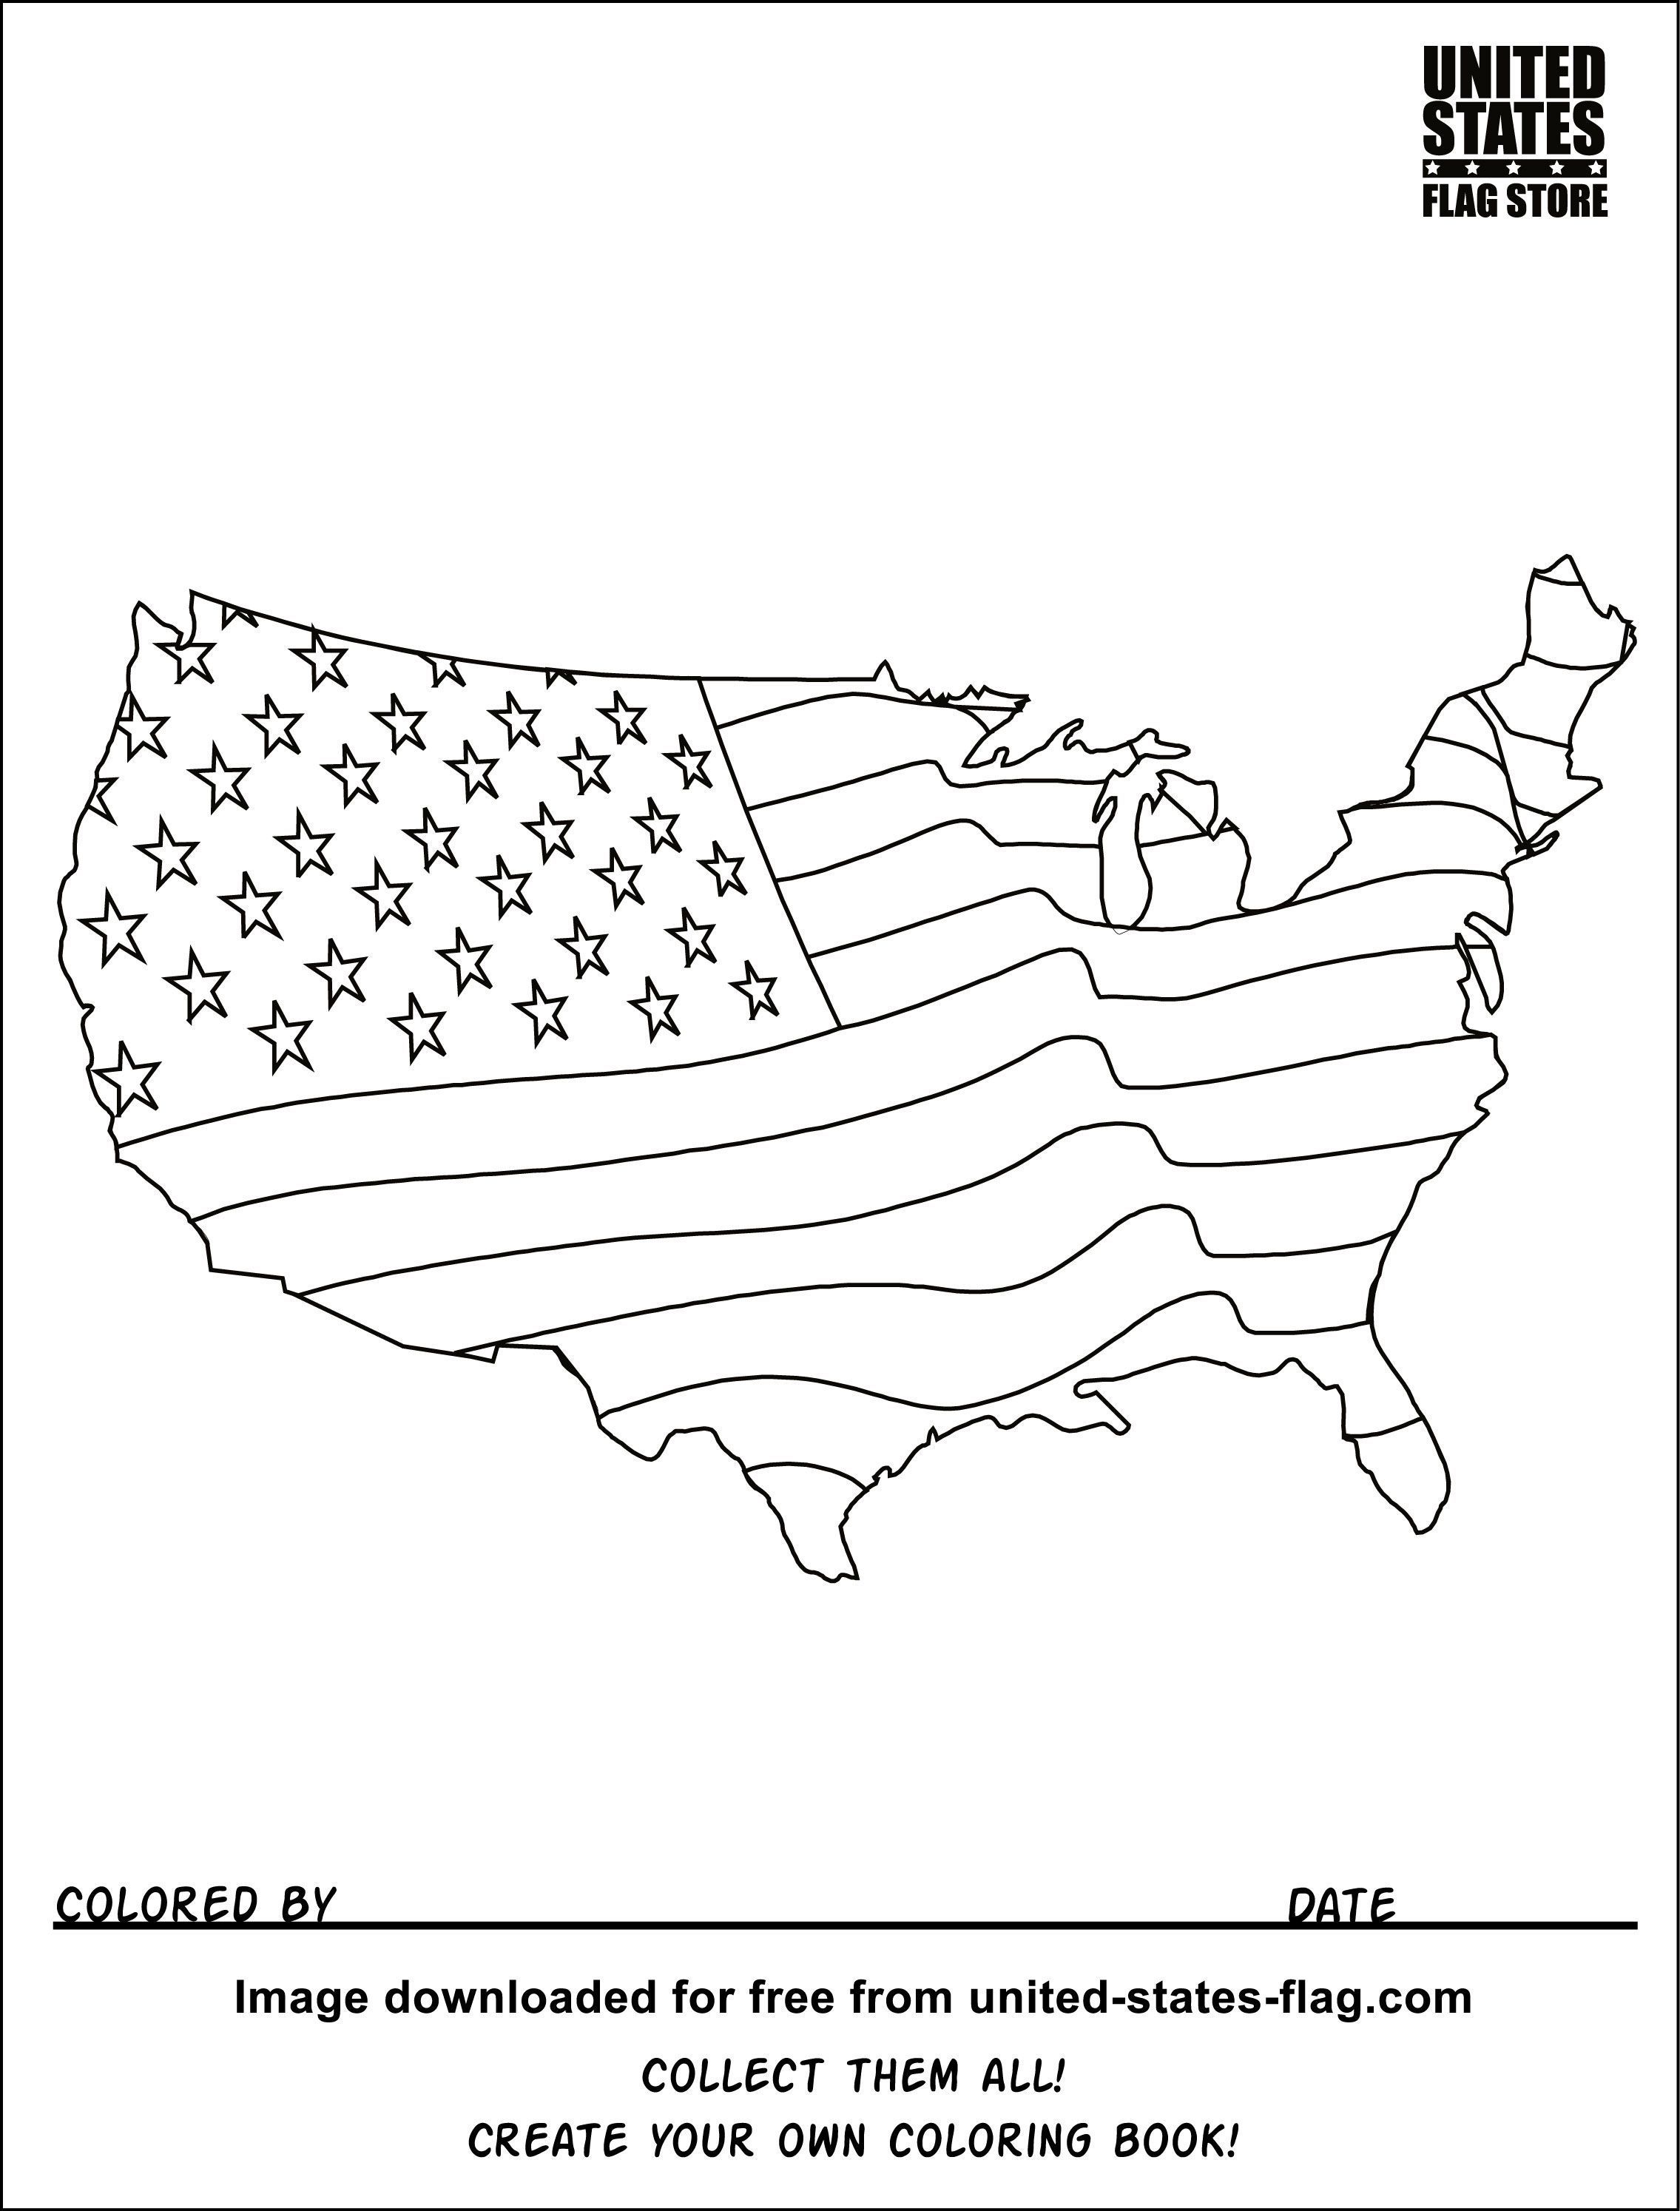 U S Flag Coloring Pages American Flag Coloring Page Flag Coloring Pages American Flag Colo In 2021 American Flag Coloring Page Flag Coloring Pages American Flag Colors